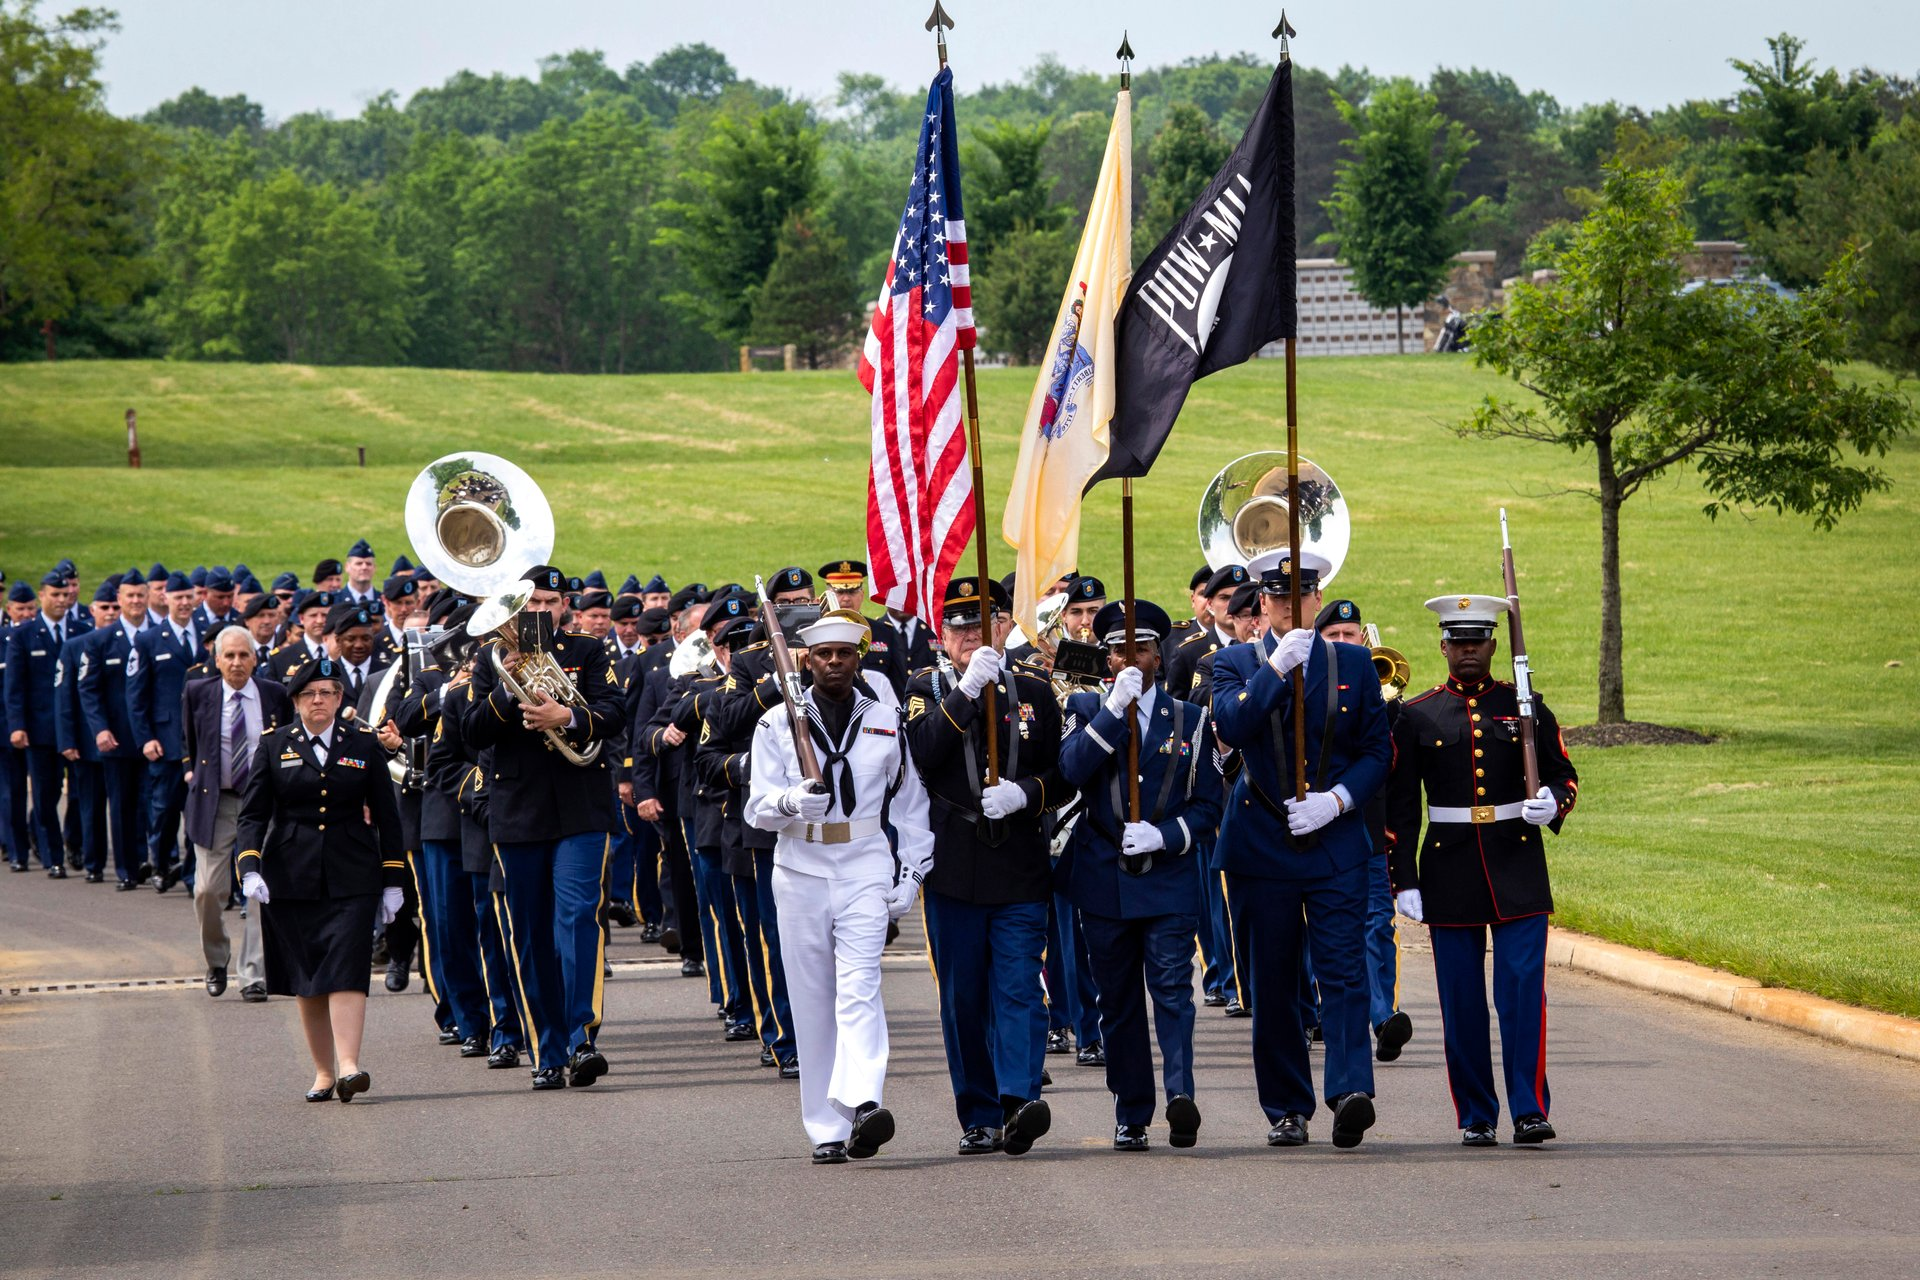 Members of the Brigadier General William C. Doyle Veterans Memorial Cemetery Joint Color Guard lead the parade at the start of the state Memorial Day ceremony at the Brigadier General William C. Doyle Veterans Memorial Cemetery, Wrightstown 2020